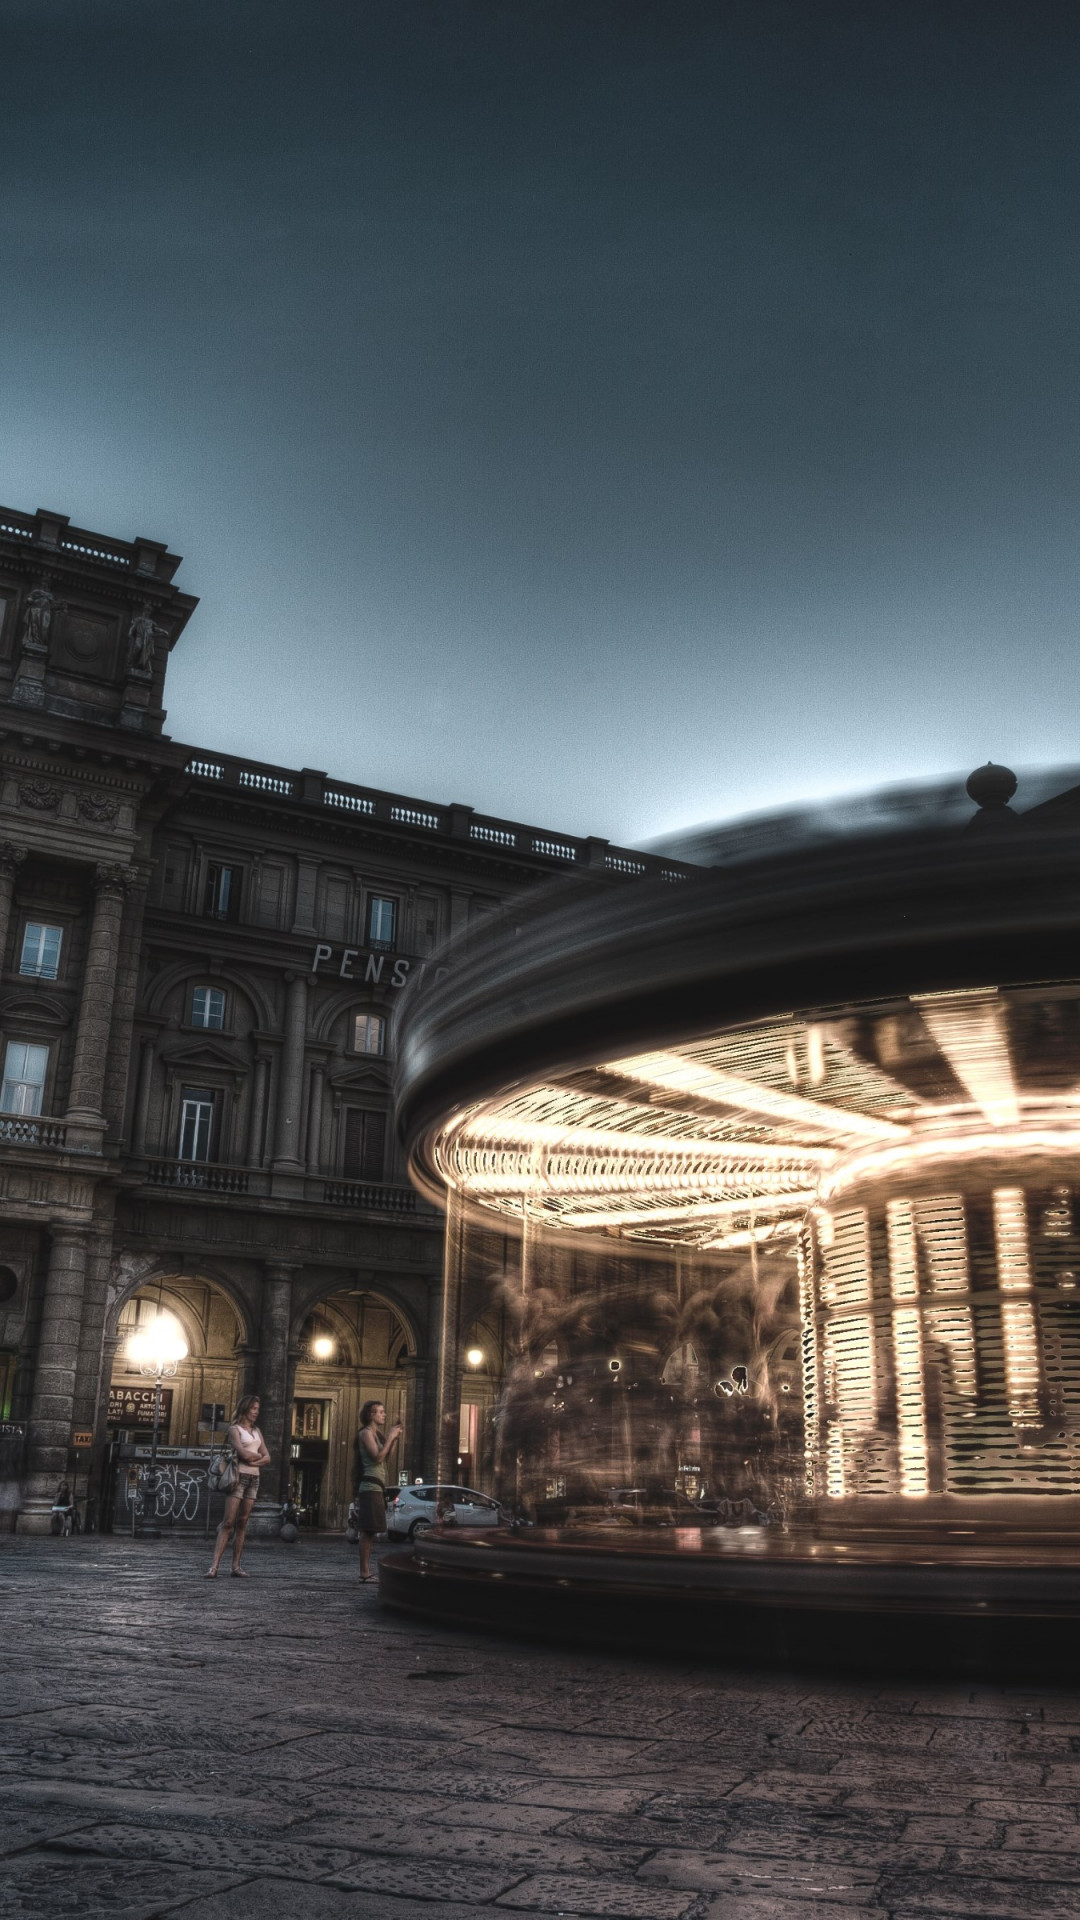 Carousel, people and buildings from Florence wallpaper 1080x1920